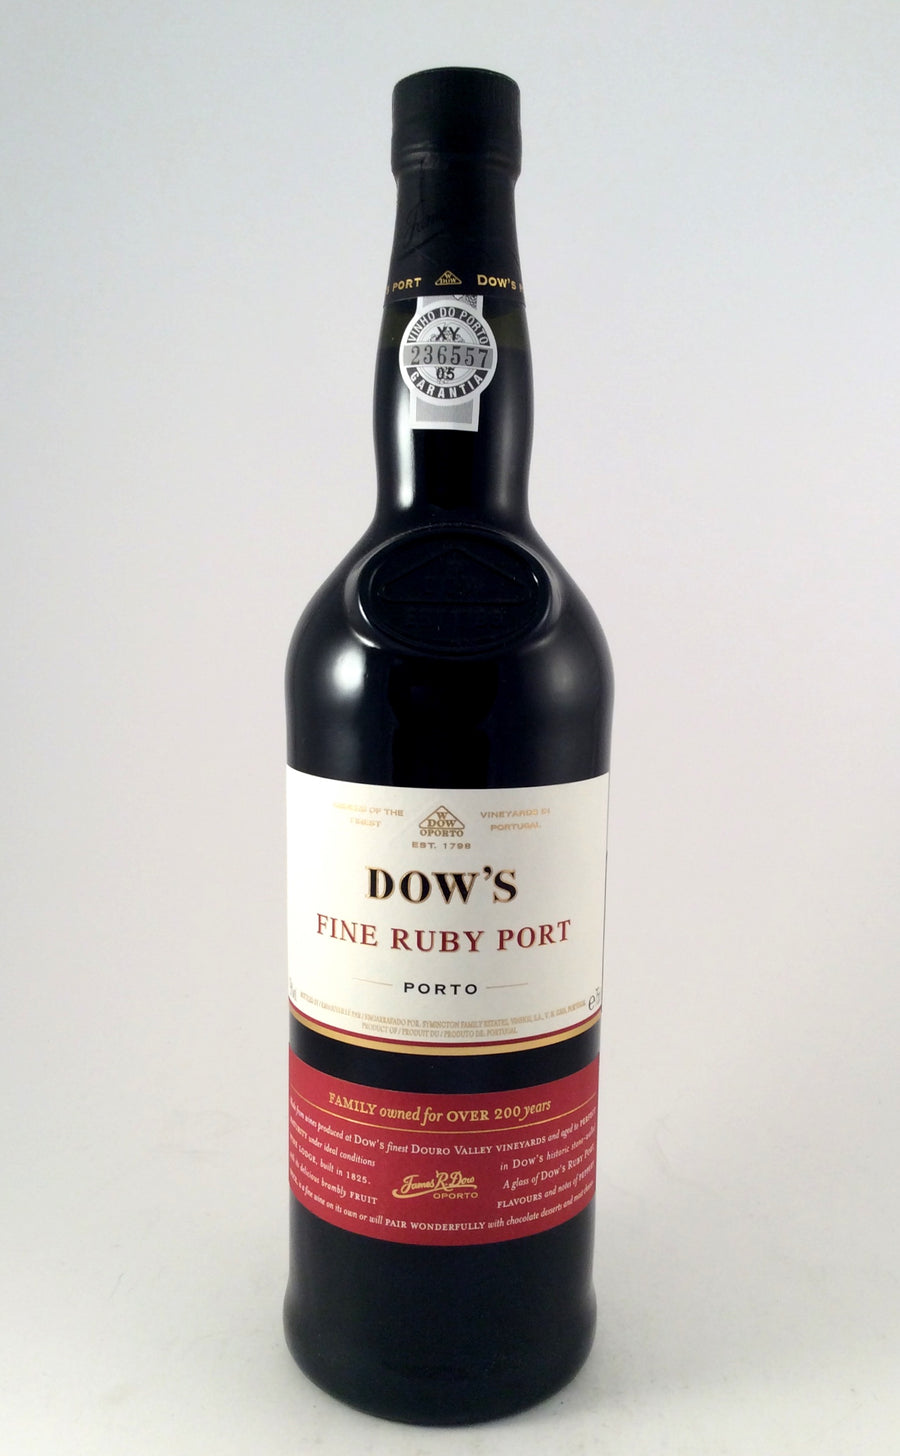 Dows Fine Ruby Port - Wineseeker